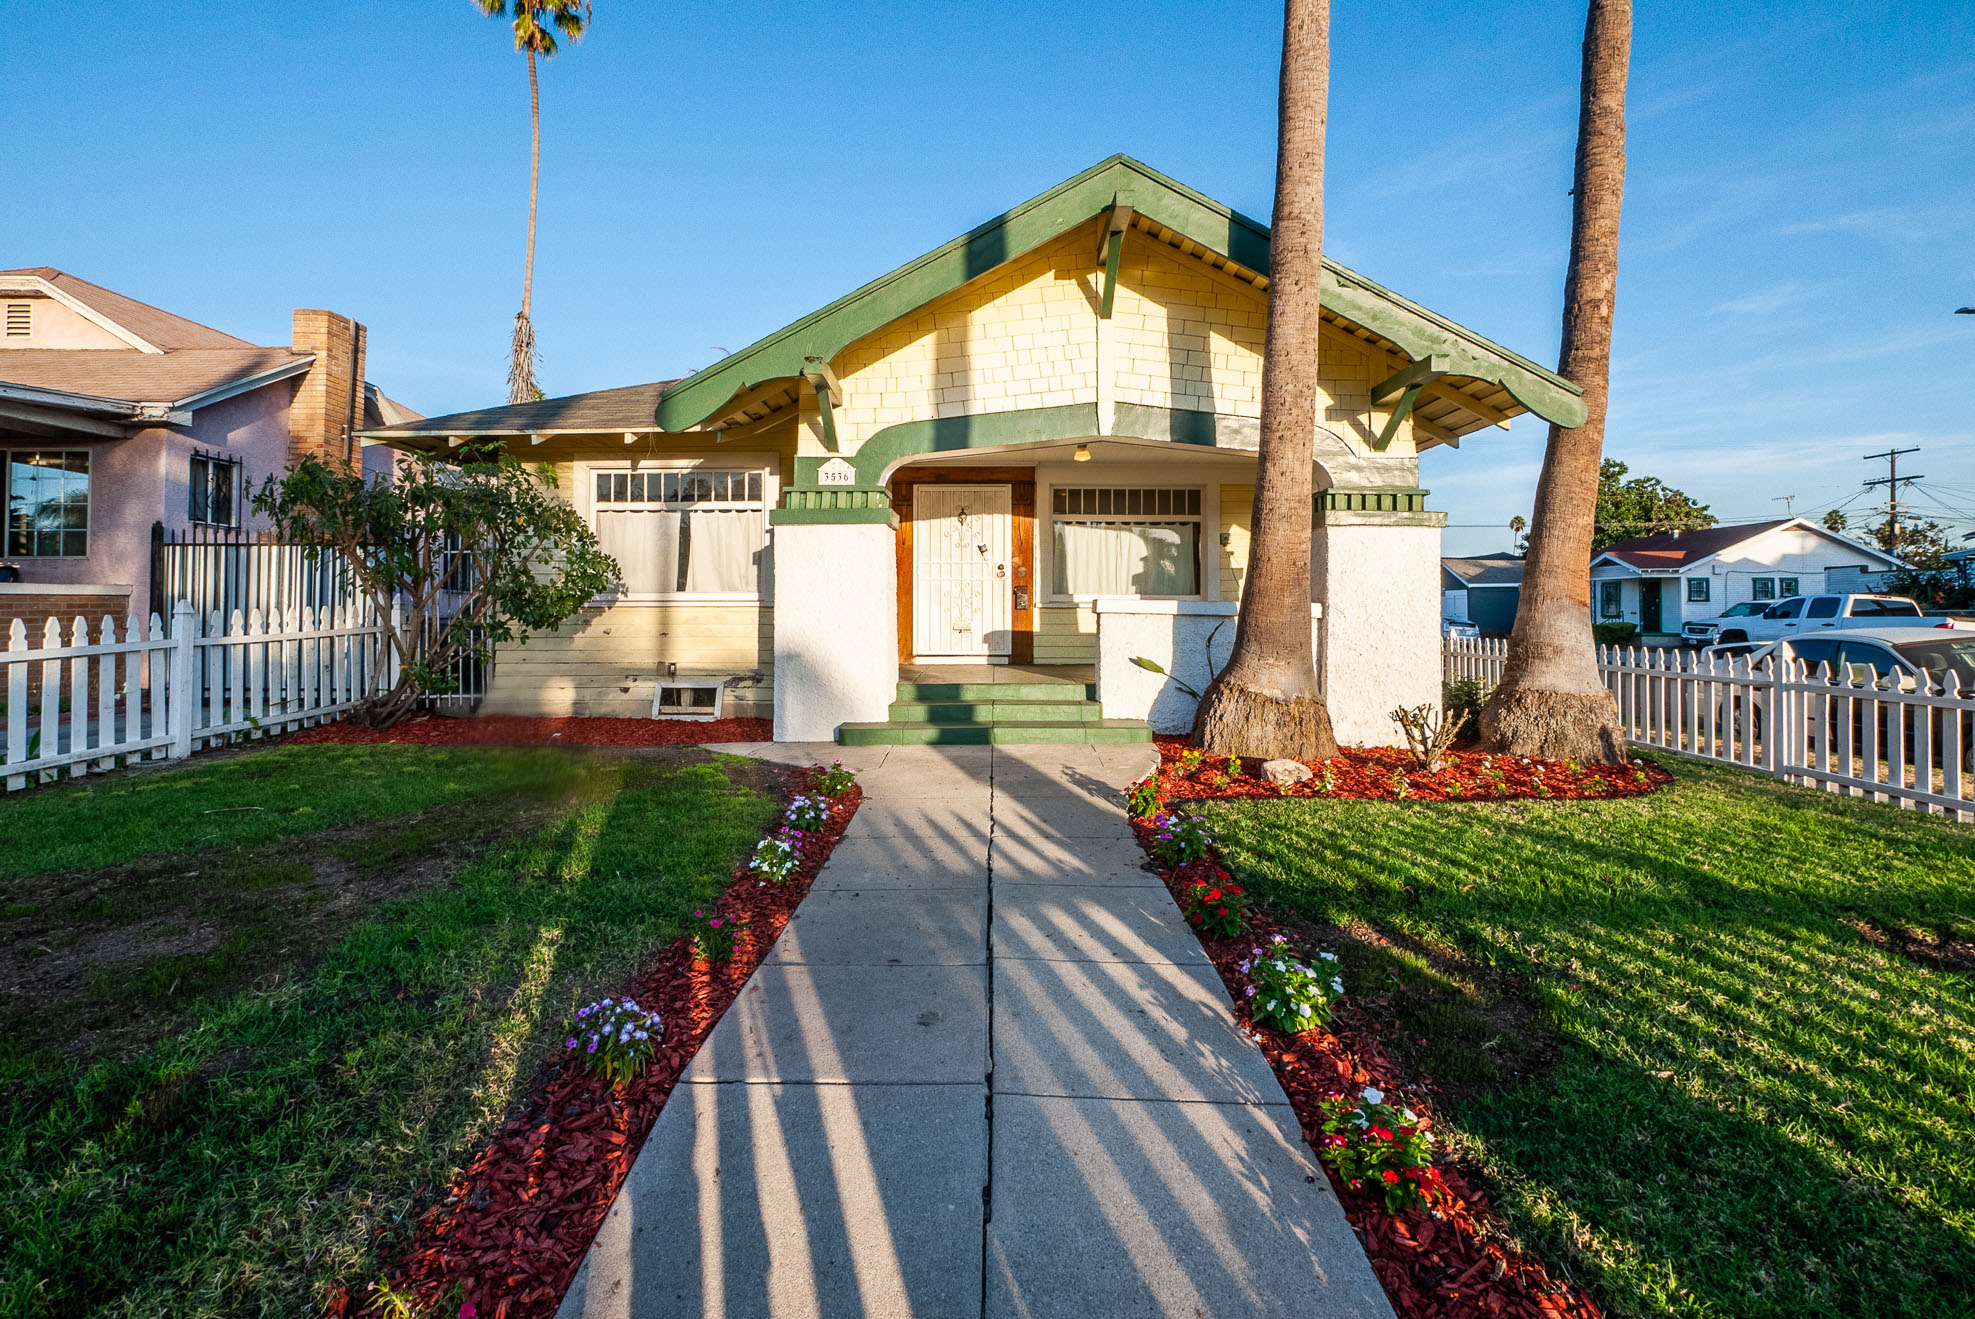 Glorious!! Beautifully Restored Craftsman Home - Exquisite Details - Central Air and Heat - Private Outdoor Space! 2 Parking Spaces